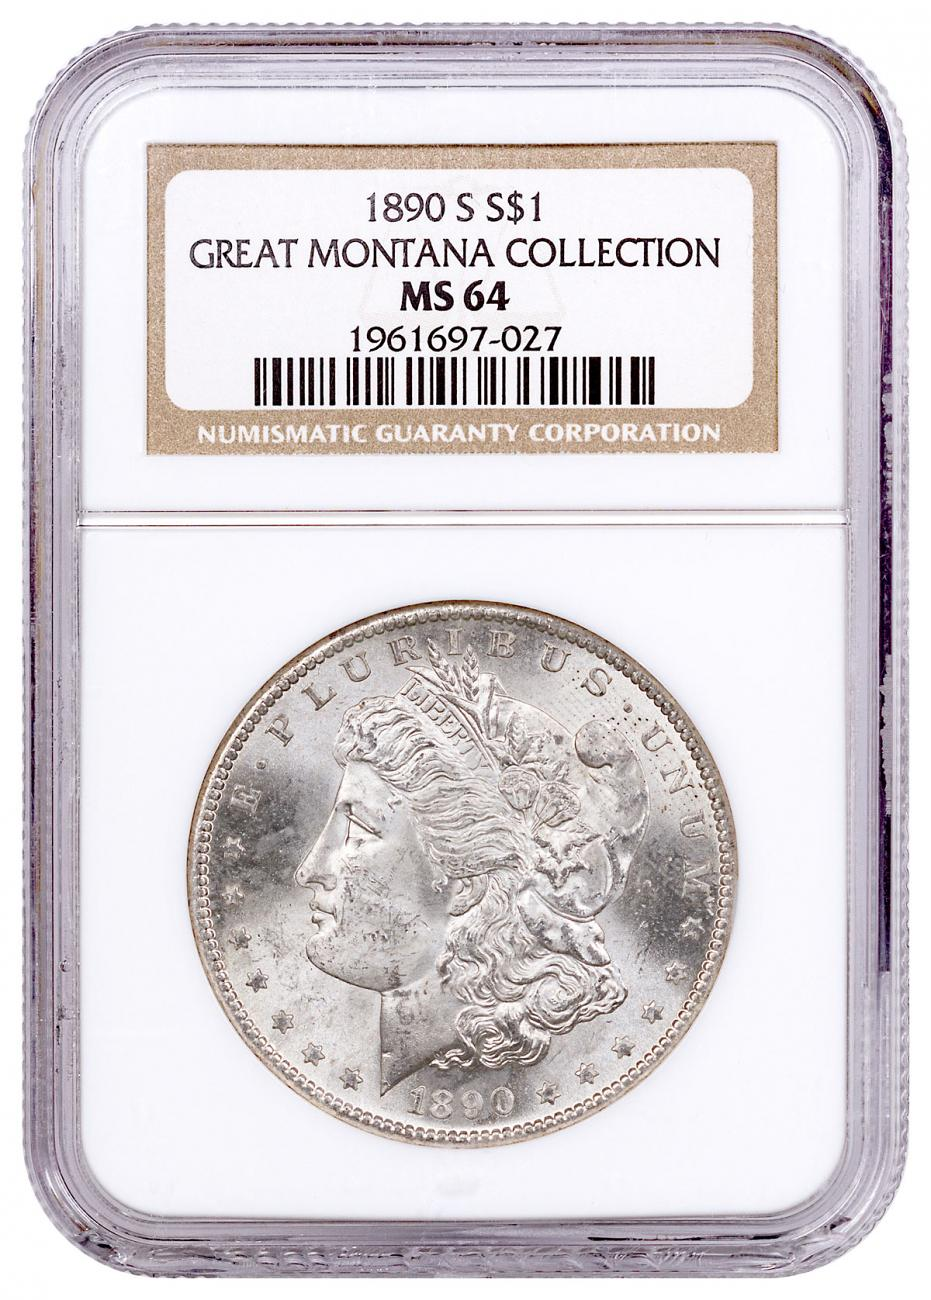 1890-S Morgan Silver Dollar From the Great Montana Collection NGC MS64